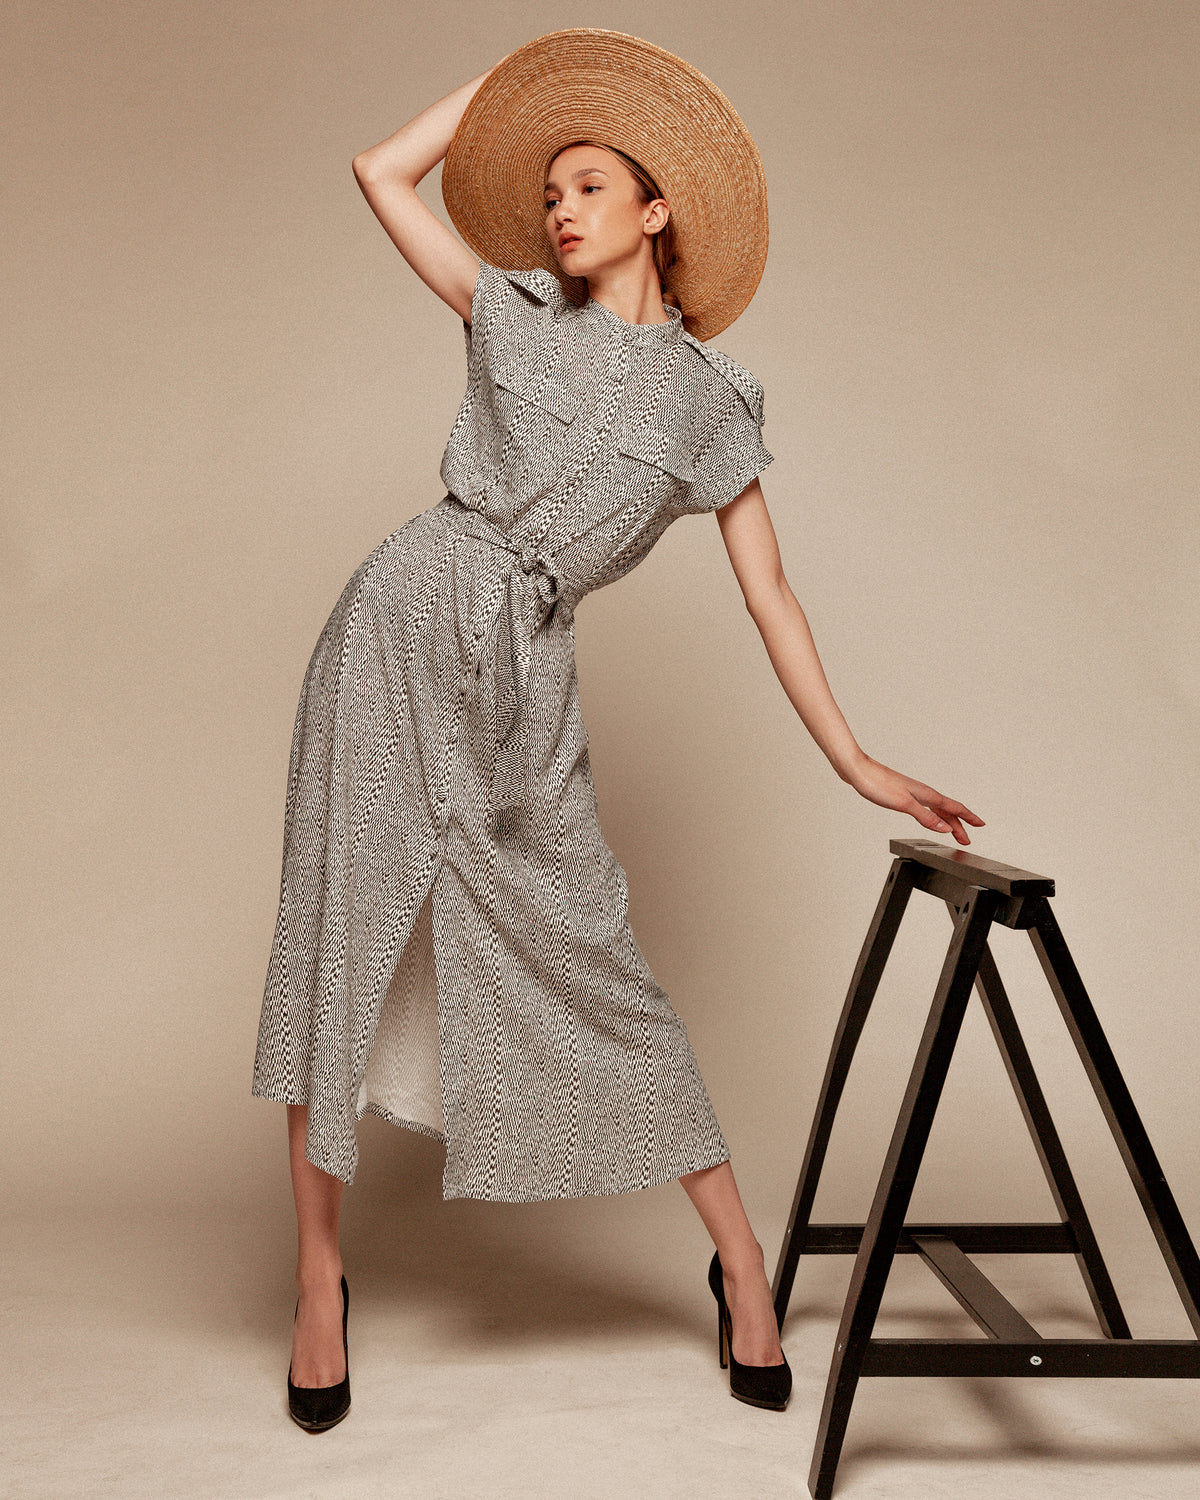 Long shirt savana Dress